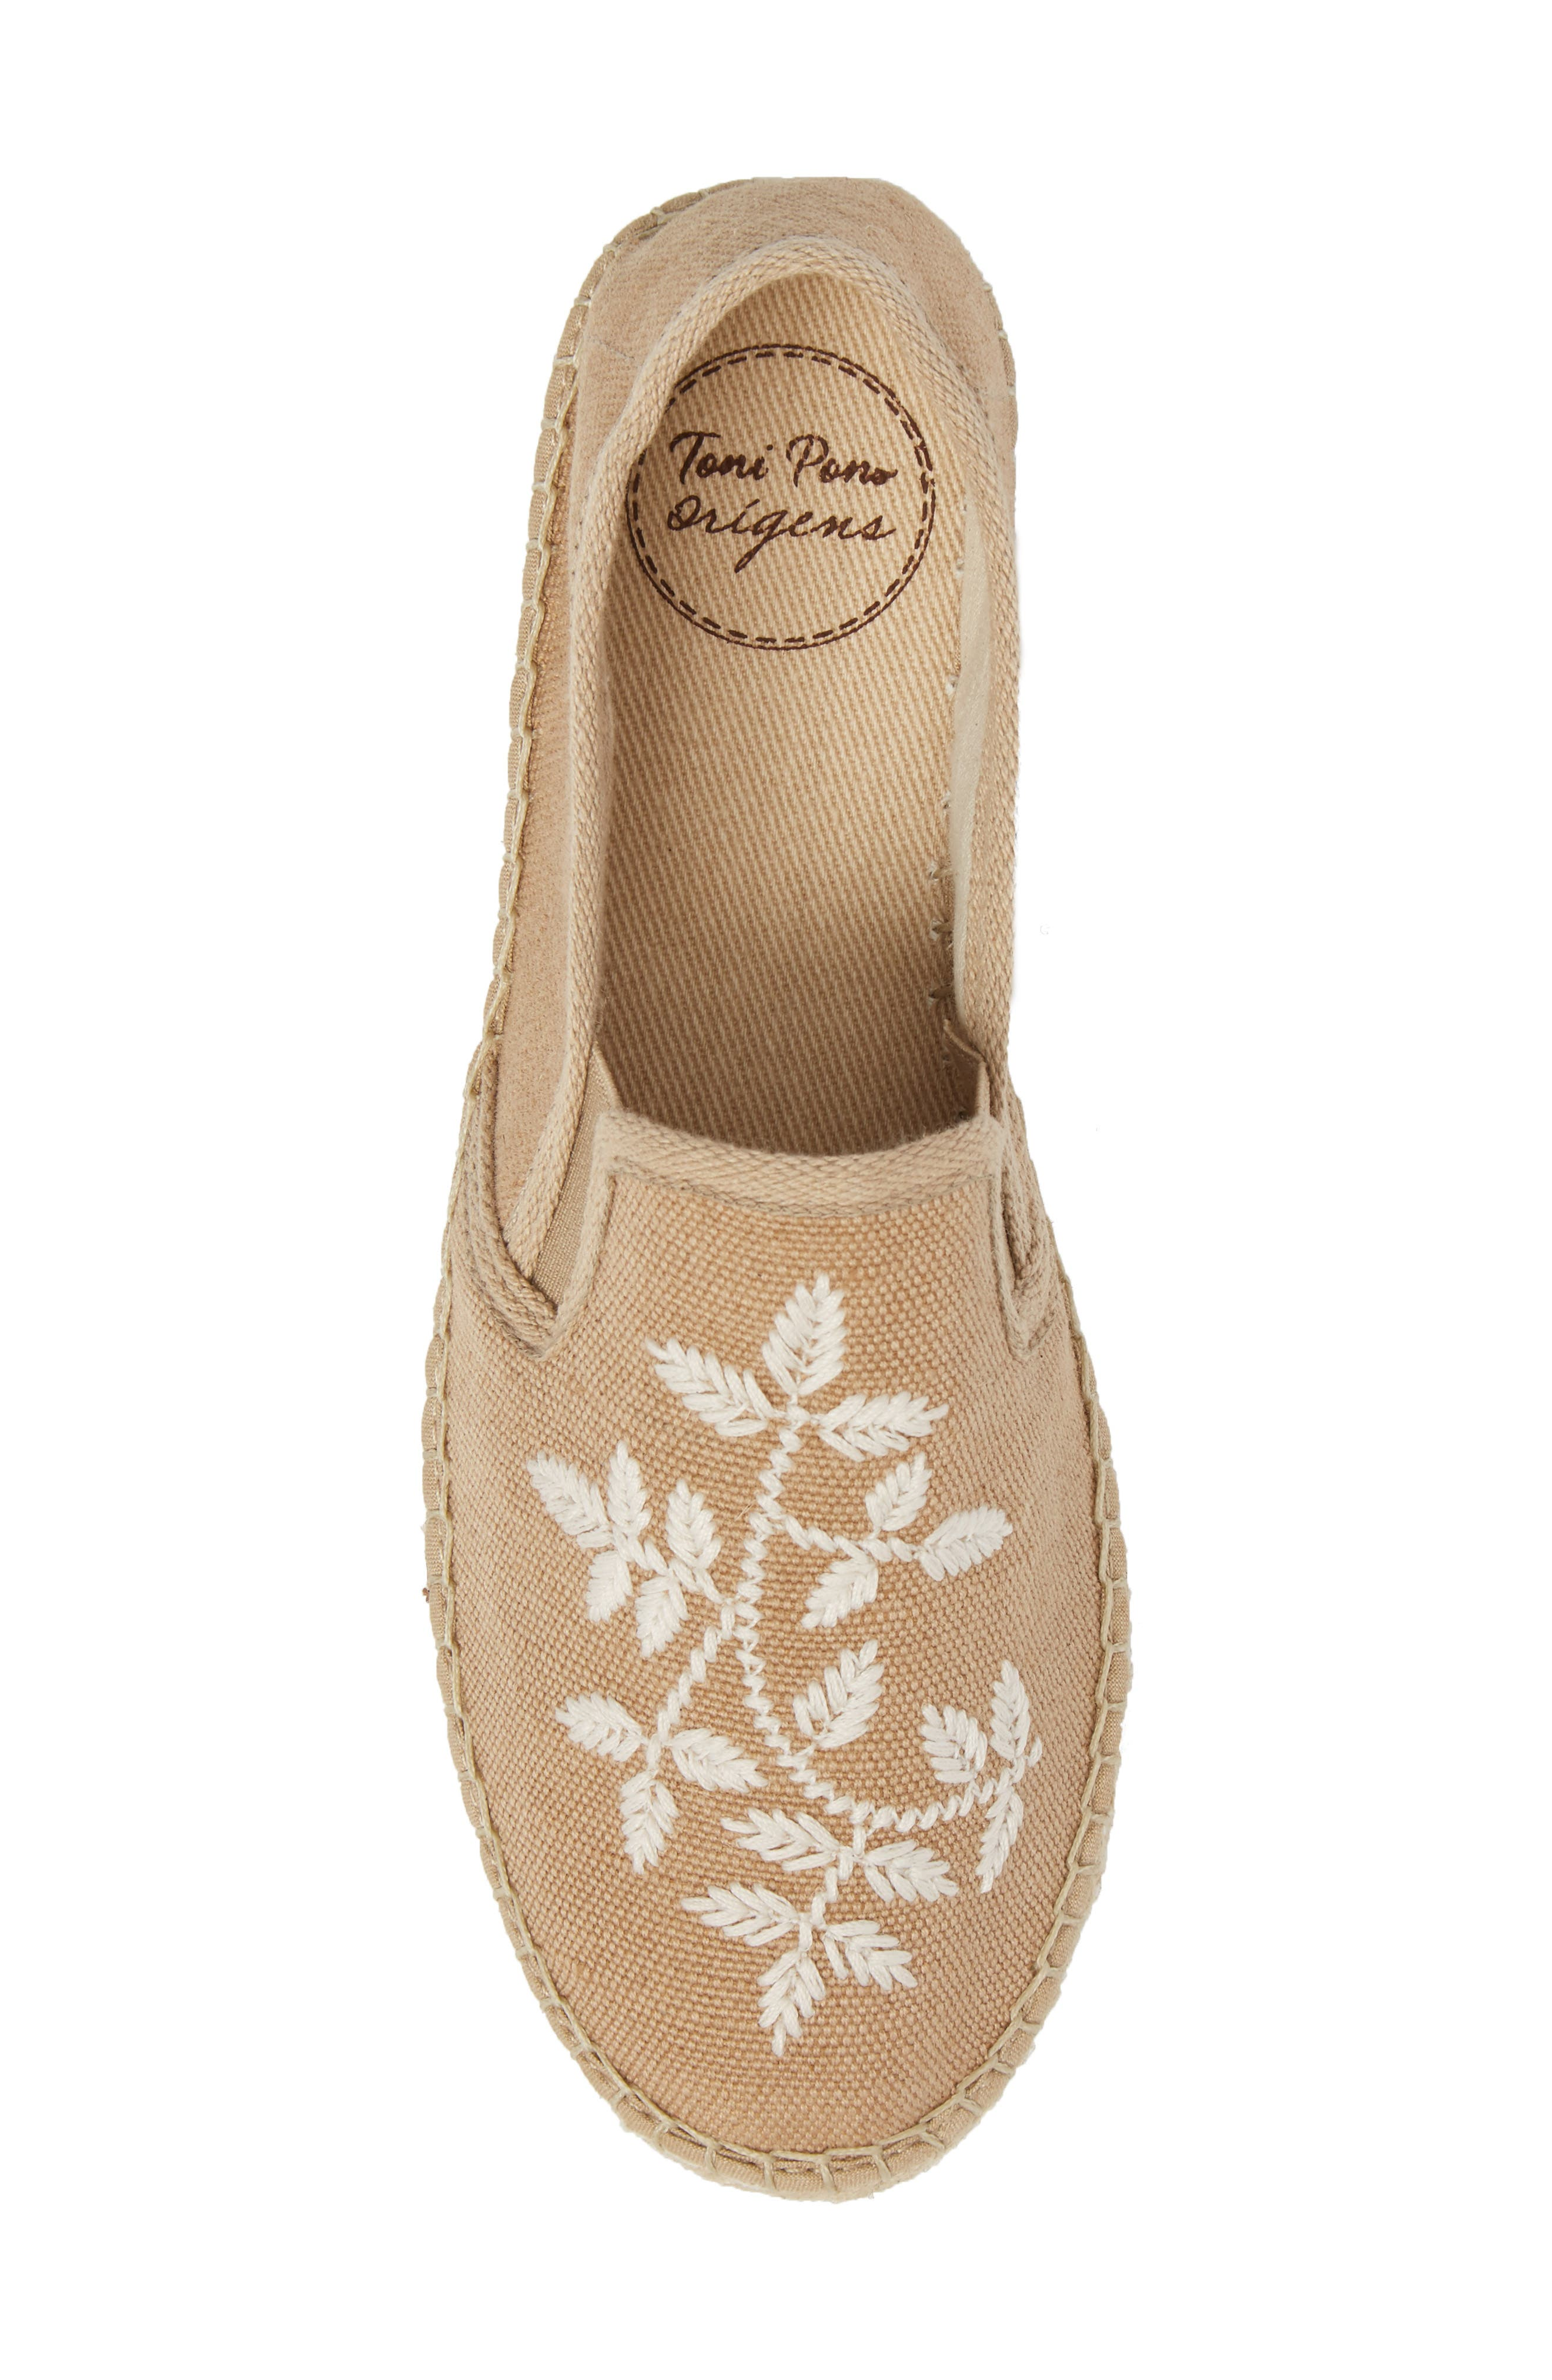 Florence Embroidered Platform Espadrille Sneaker,                             Alternate thumbnail 5, color,                             Tobacco Fabric